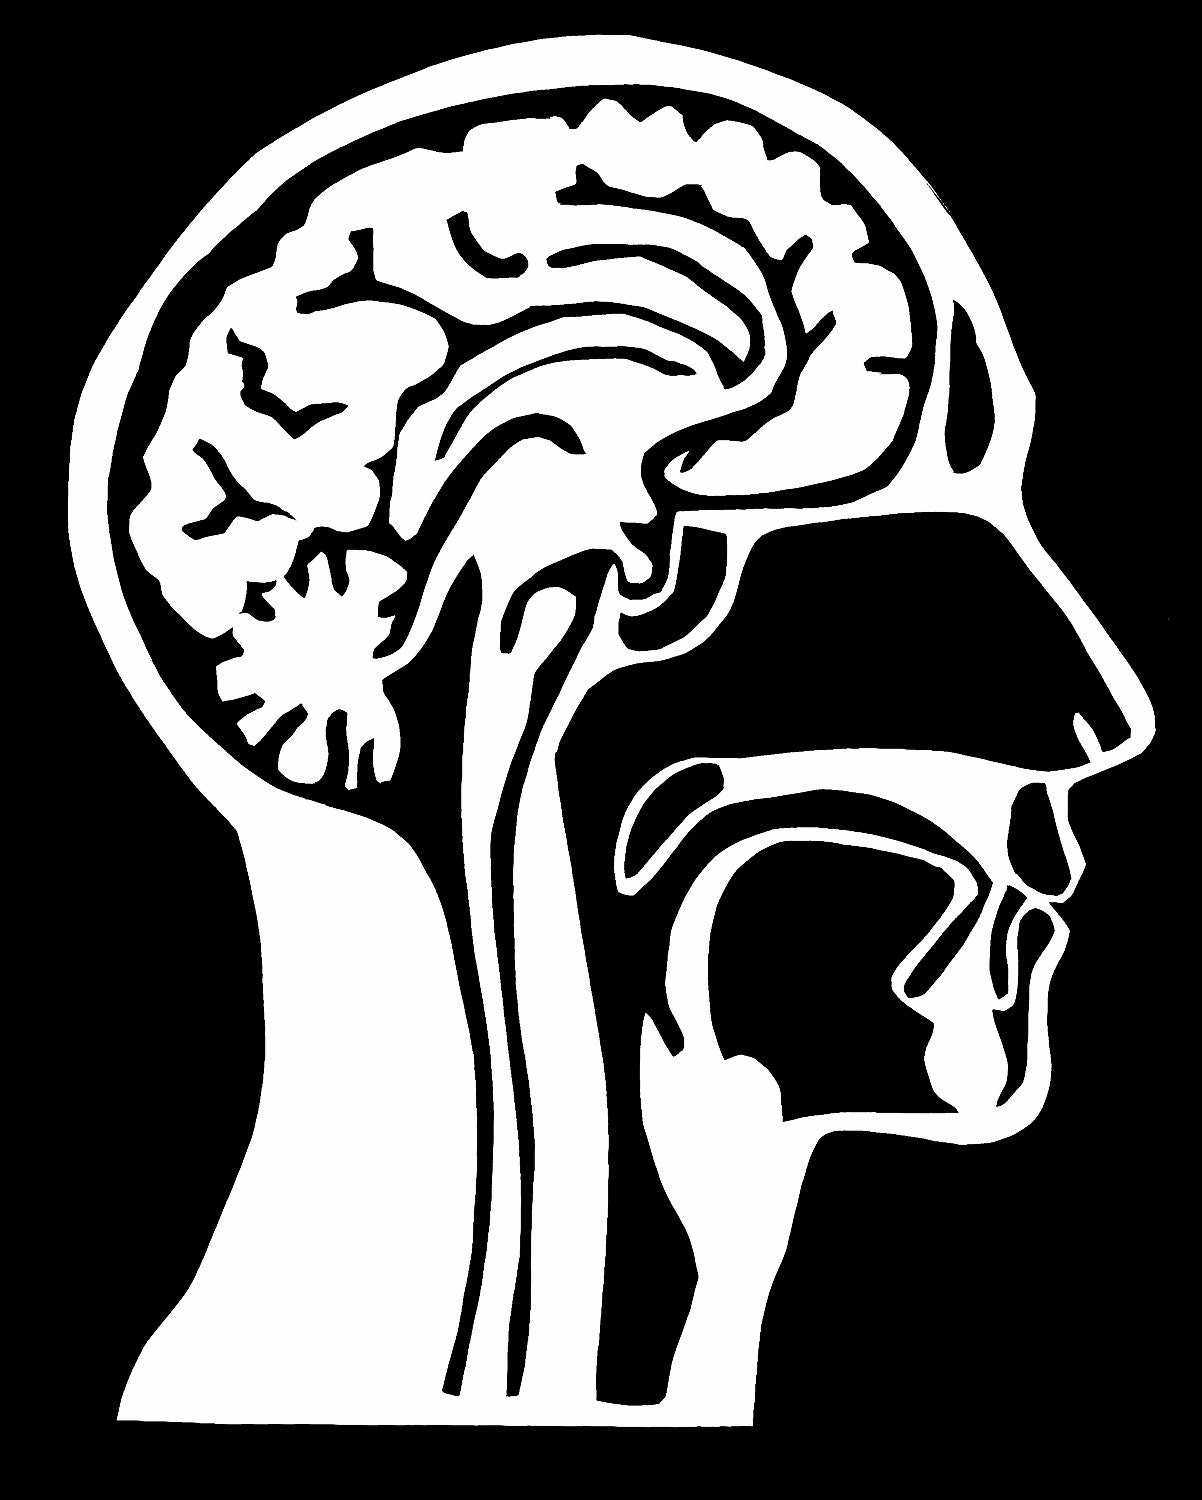 human brain essay The brain forms part of the central nervous system together with the spinal cord the body's nervous system is the center for communication and.